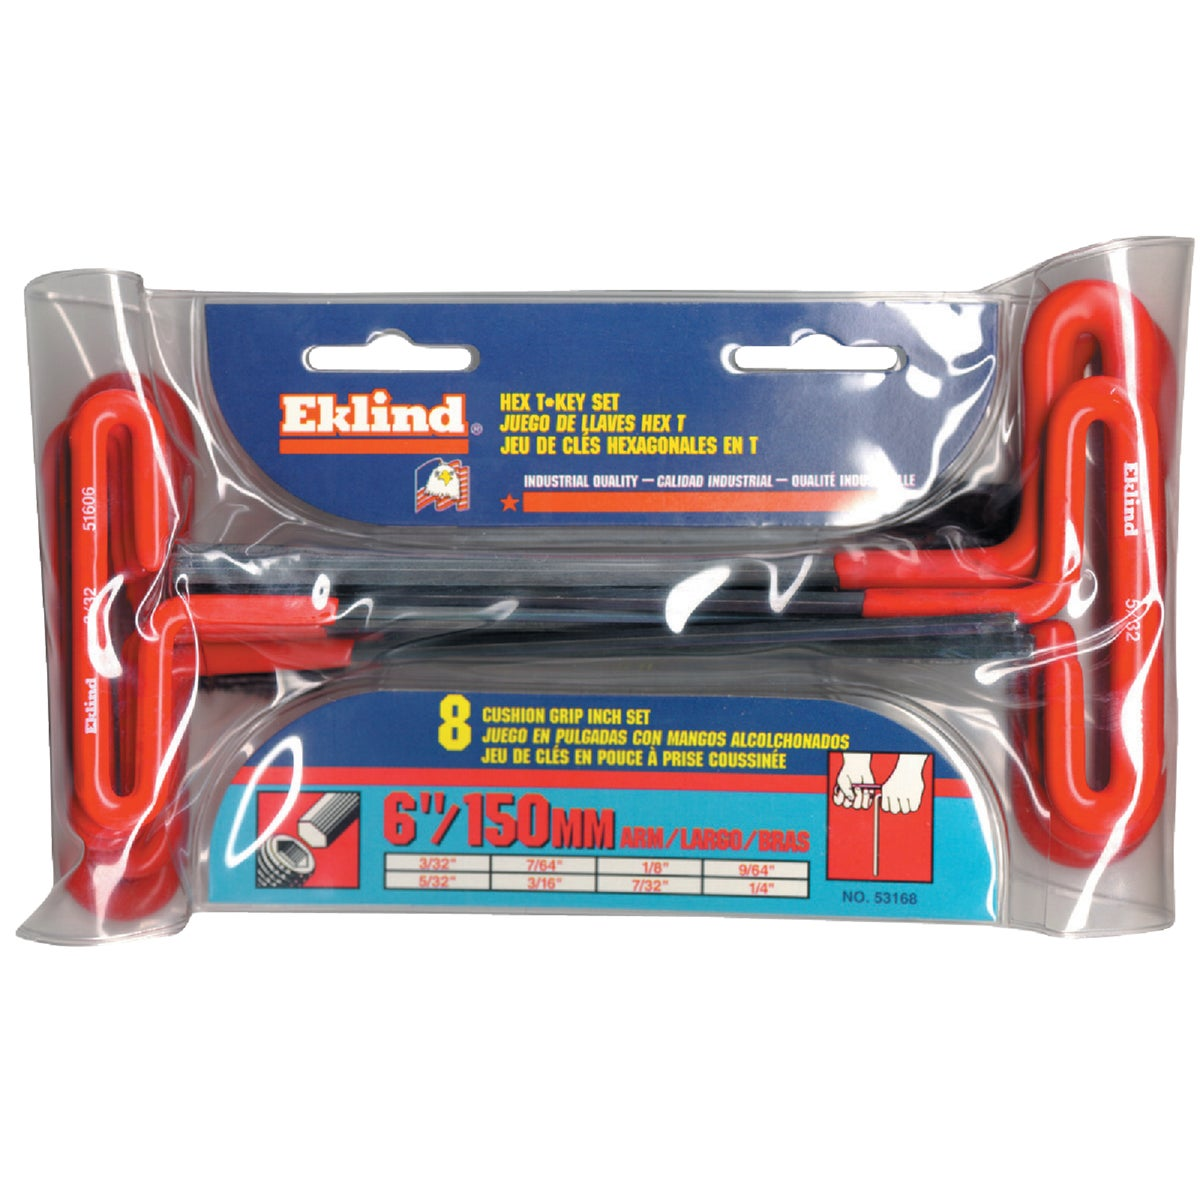 "6"" T-HANDLE HEX KEY - 53168 by Eklind"